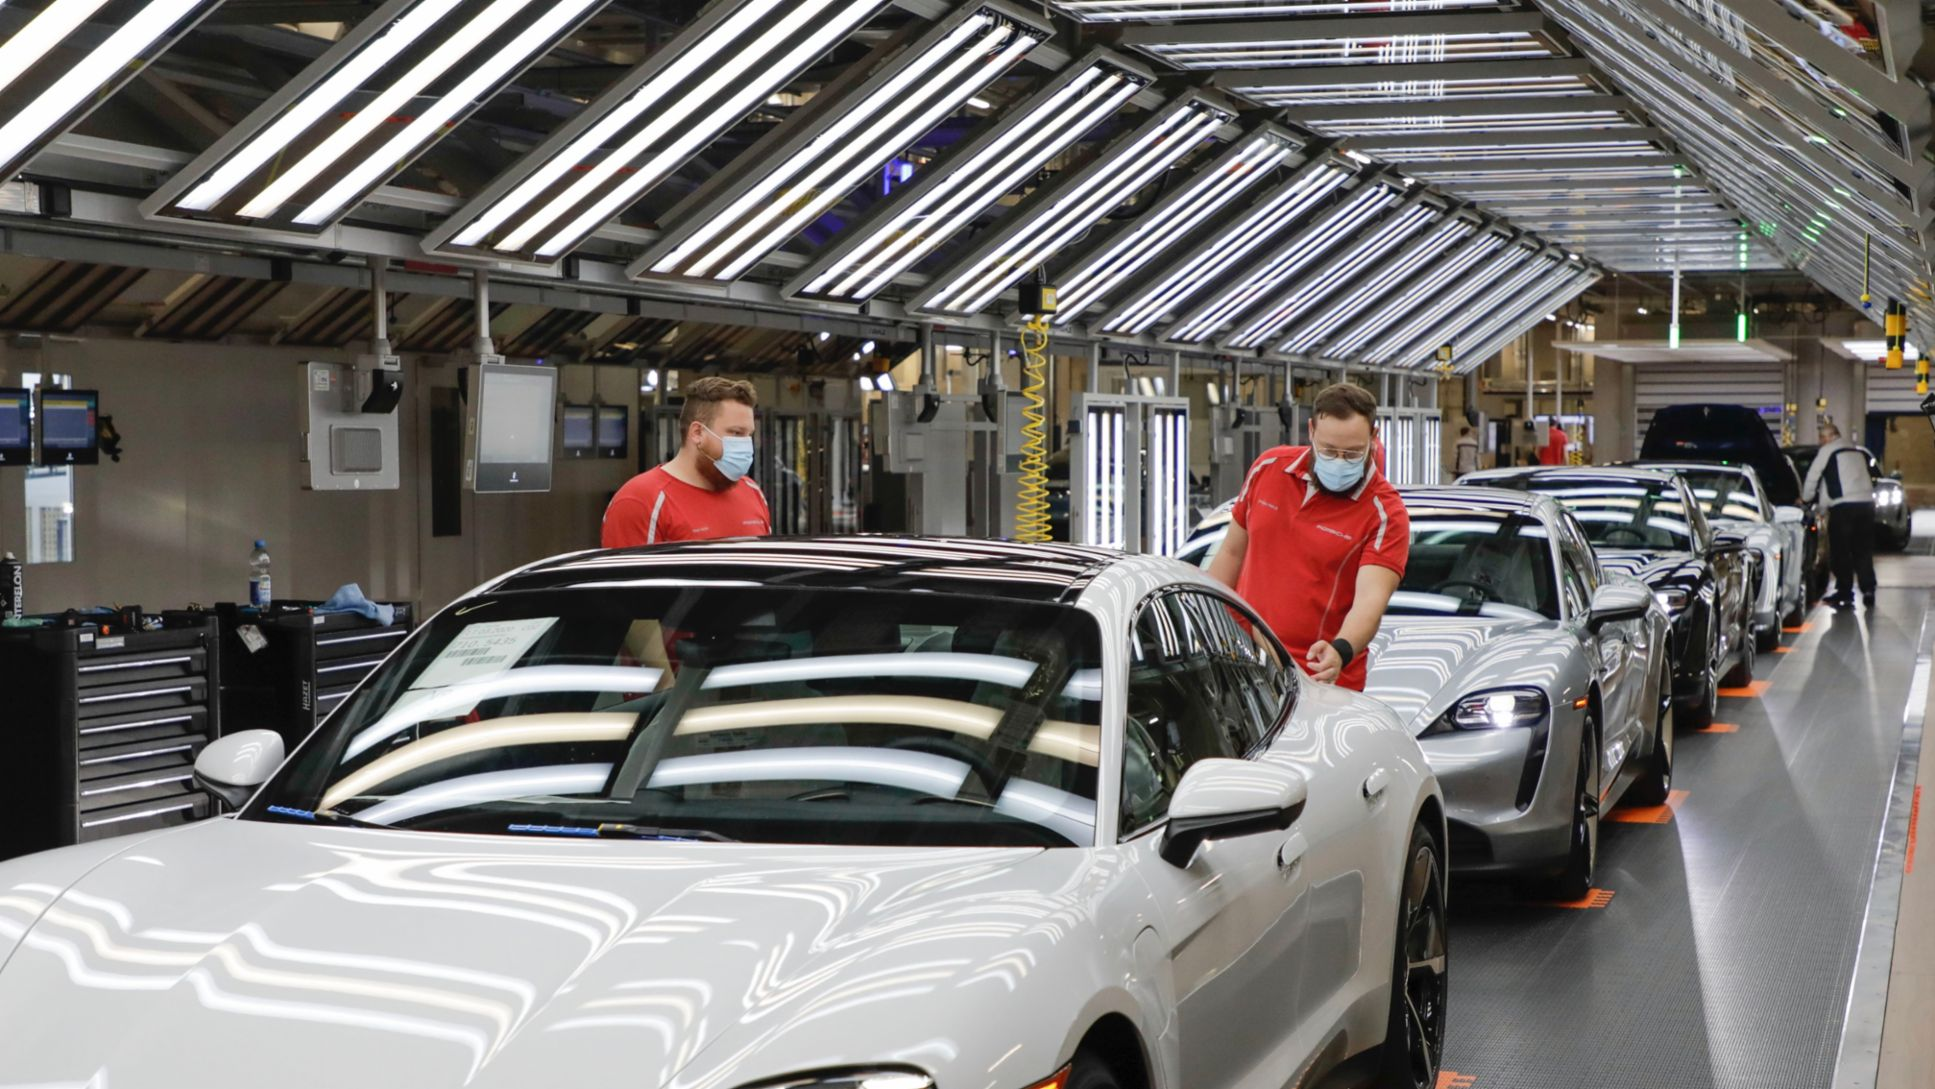 Porsche calls for suppliers to switch to green energy - Image 2